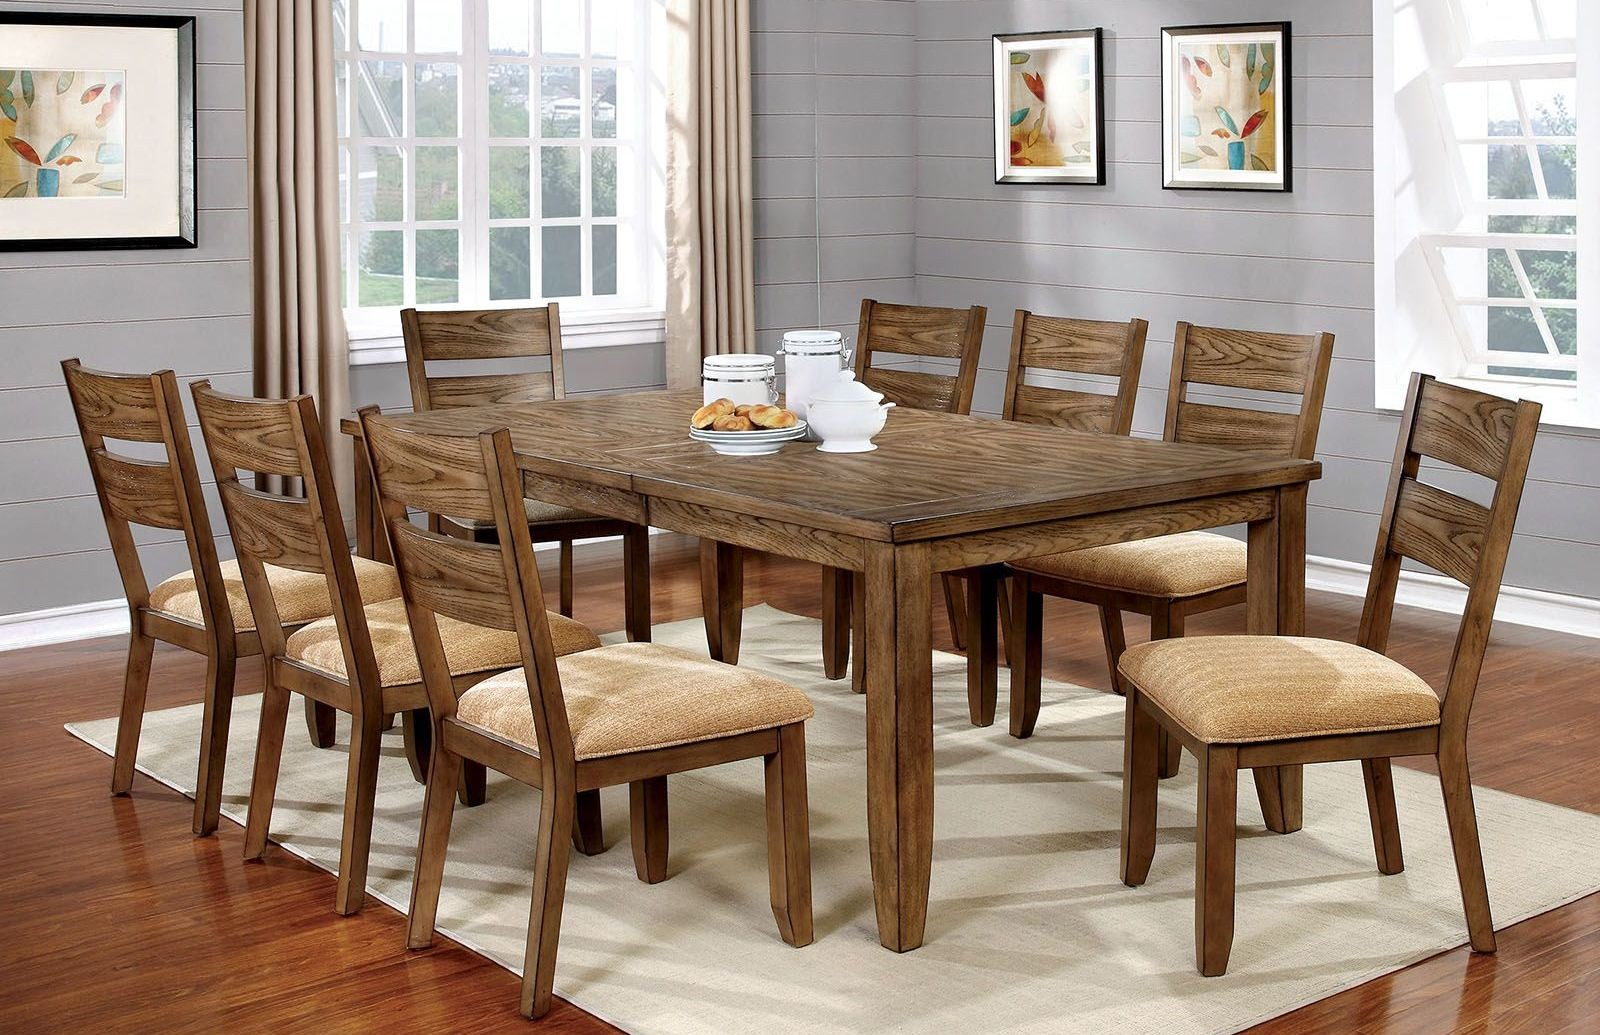 light oak dining chairs folding shower chair with arms ava room set from furniture of america